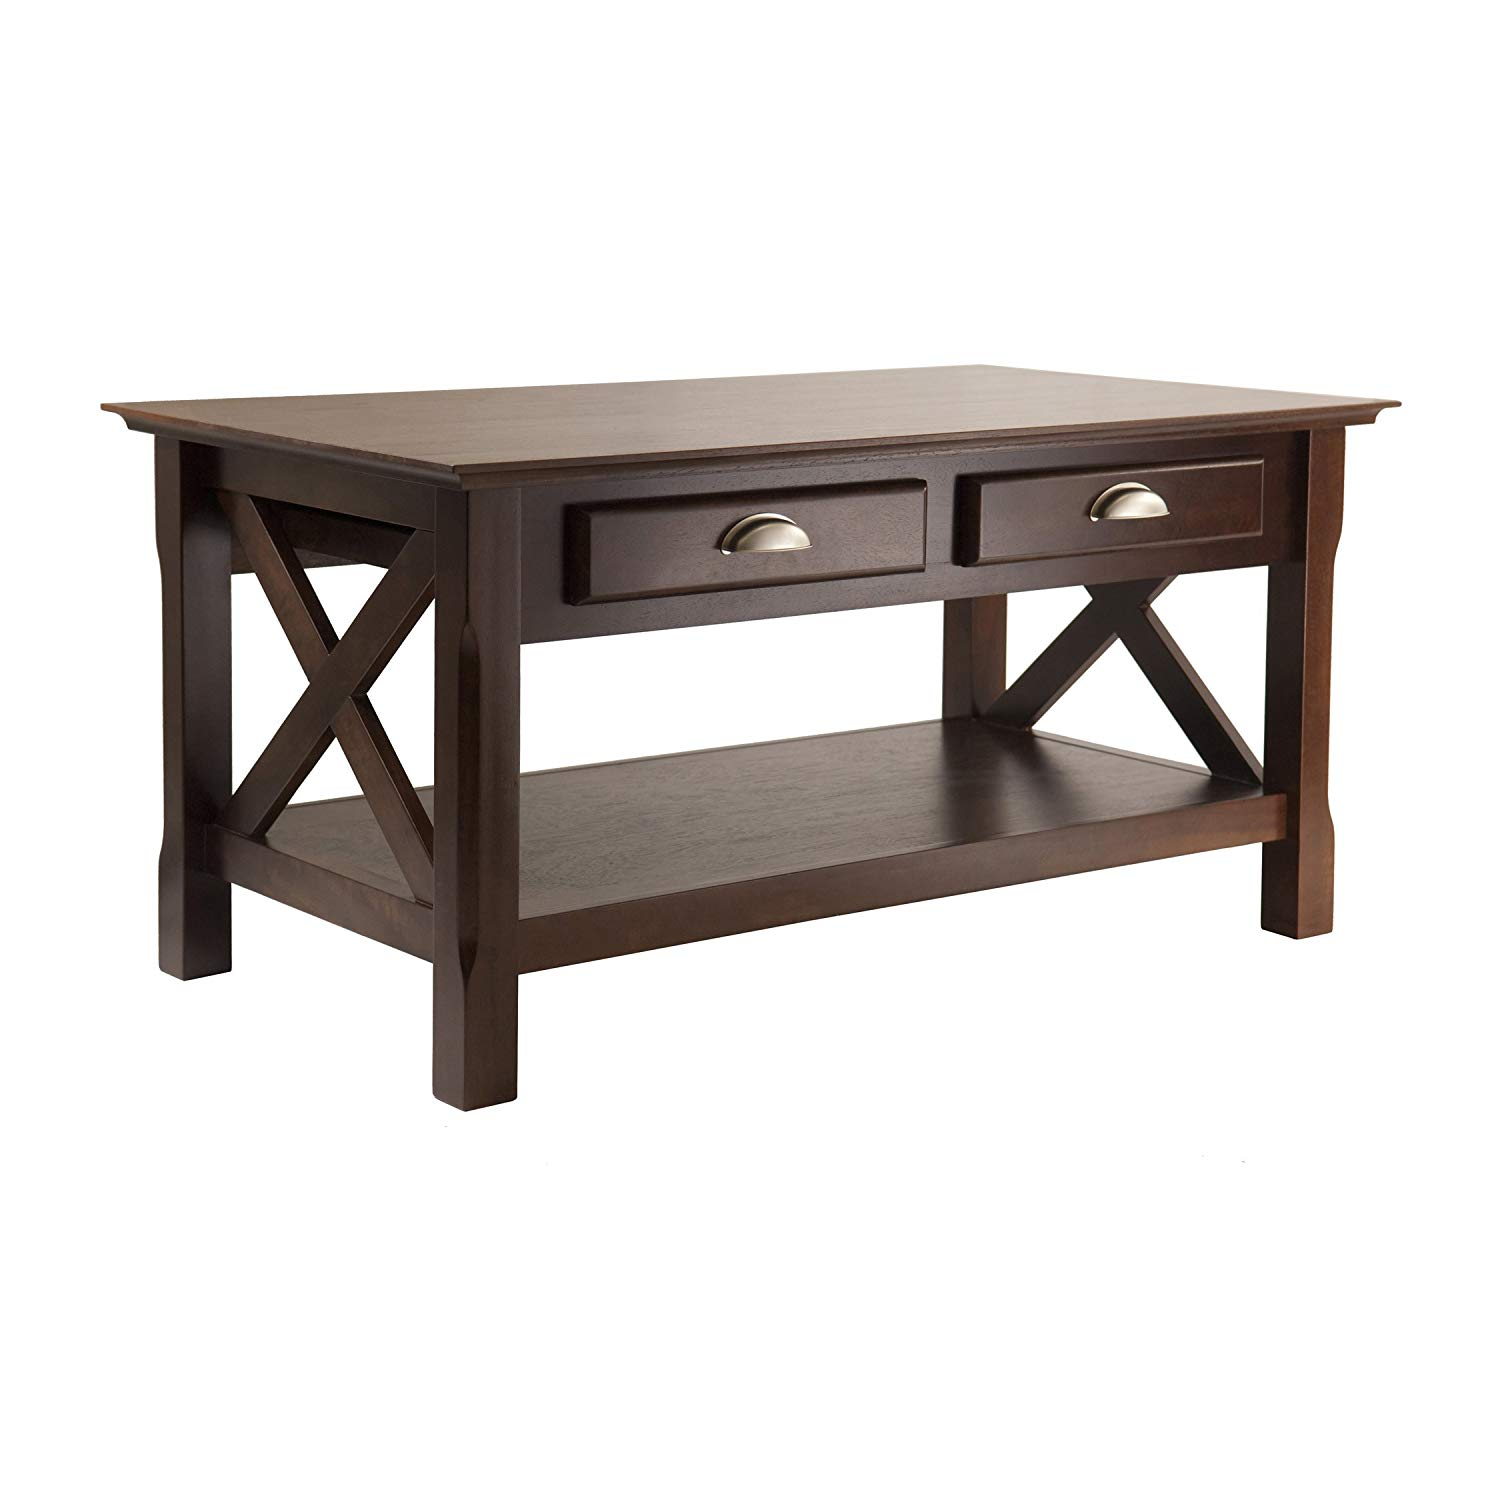 winsome wood xola occasional table cappuccino accent instructions finish kitchen dining marble coffee target cool sofa tables outdoor furniture rustic half moon end wicker patio